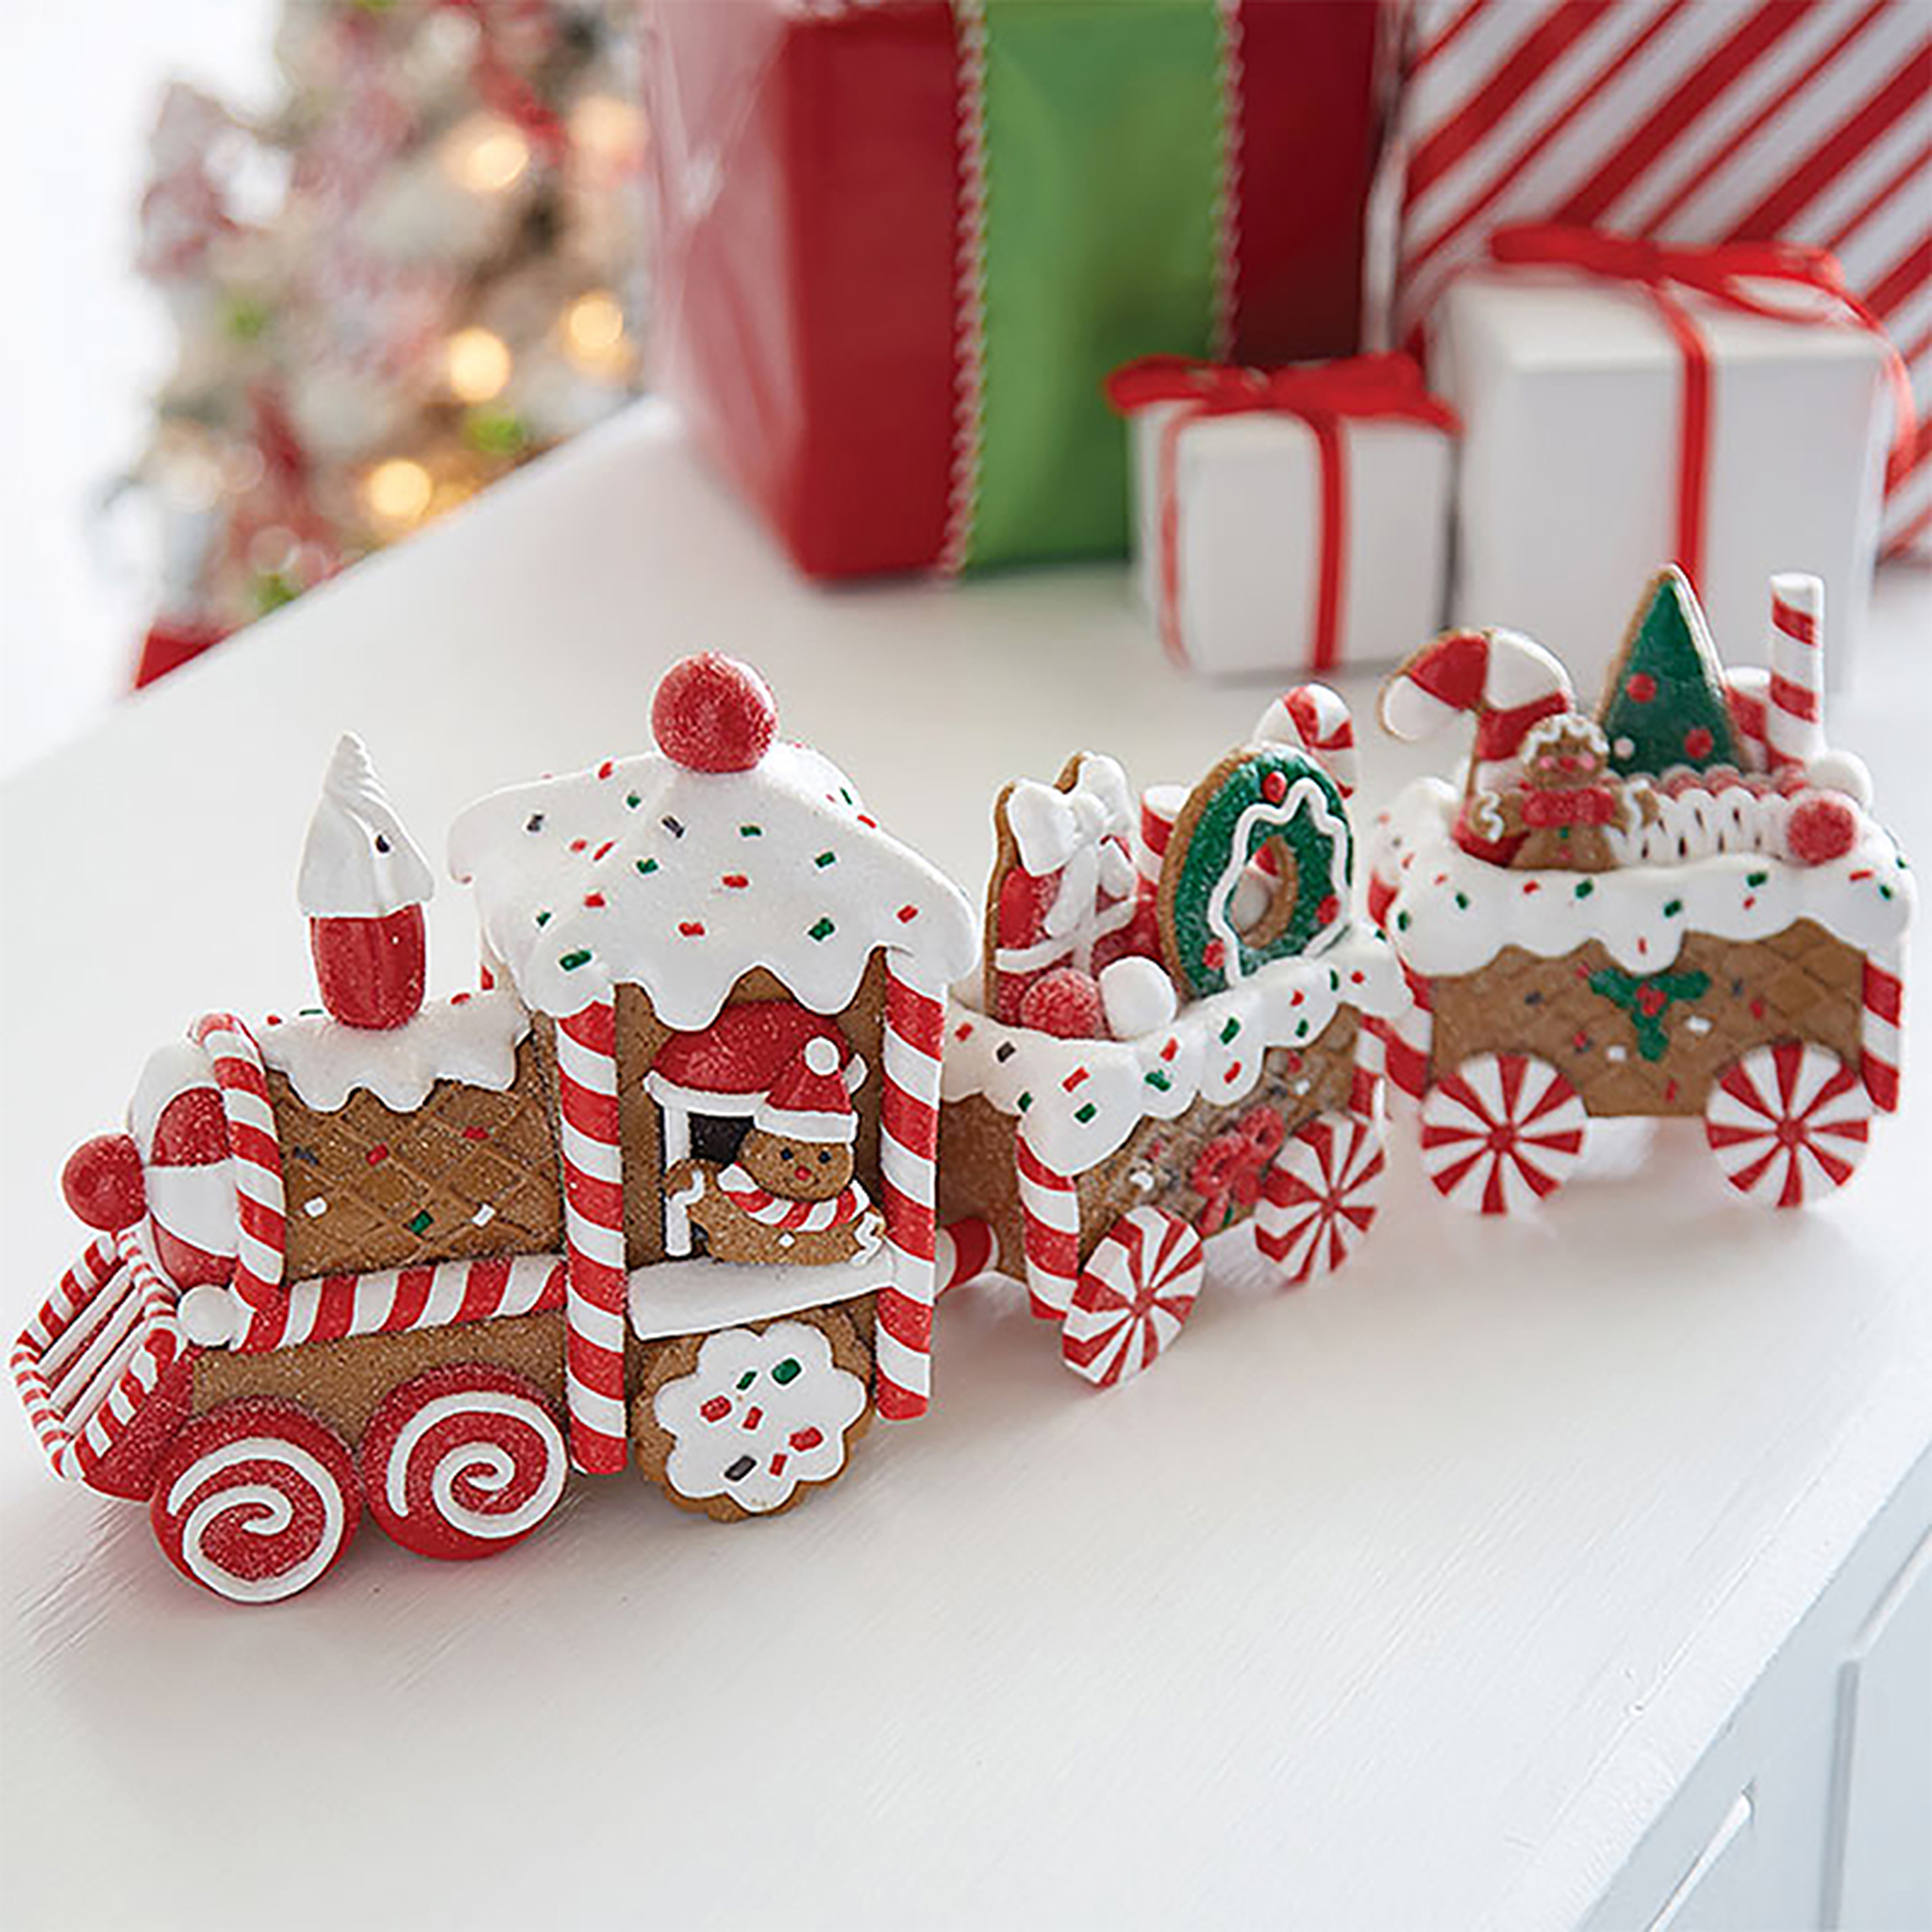 Christmas Decorations 2019.Top 9 2019 Christmas Decorating Trends The Jolly Christmas